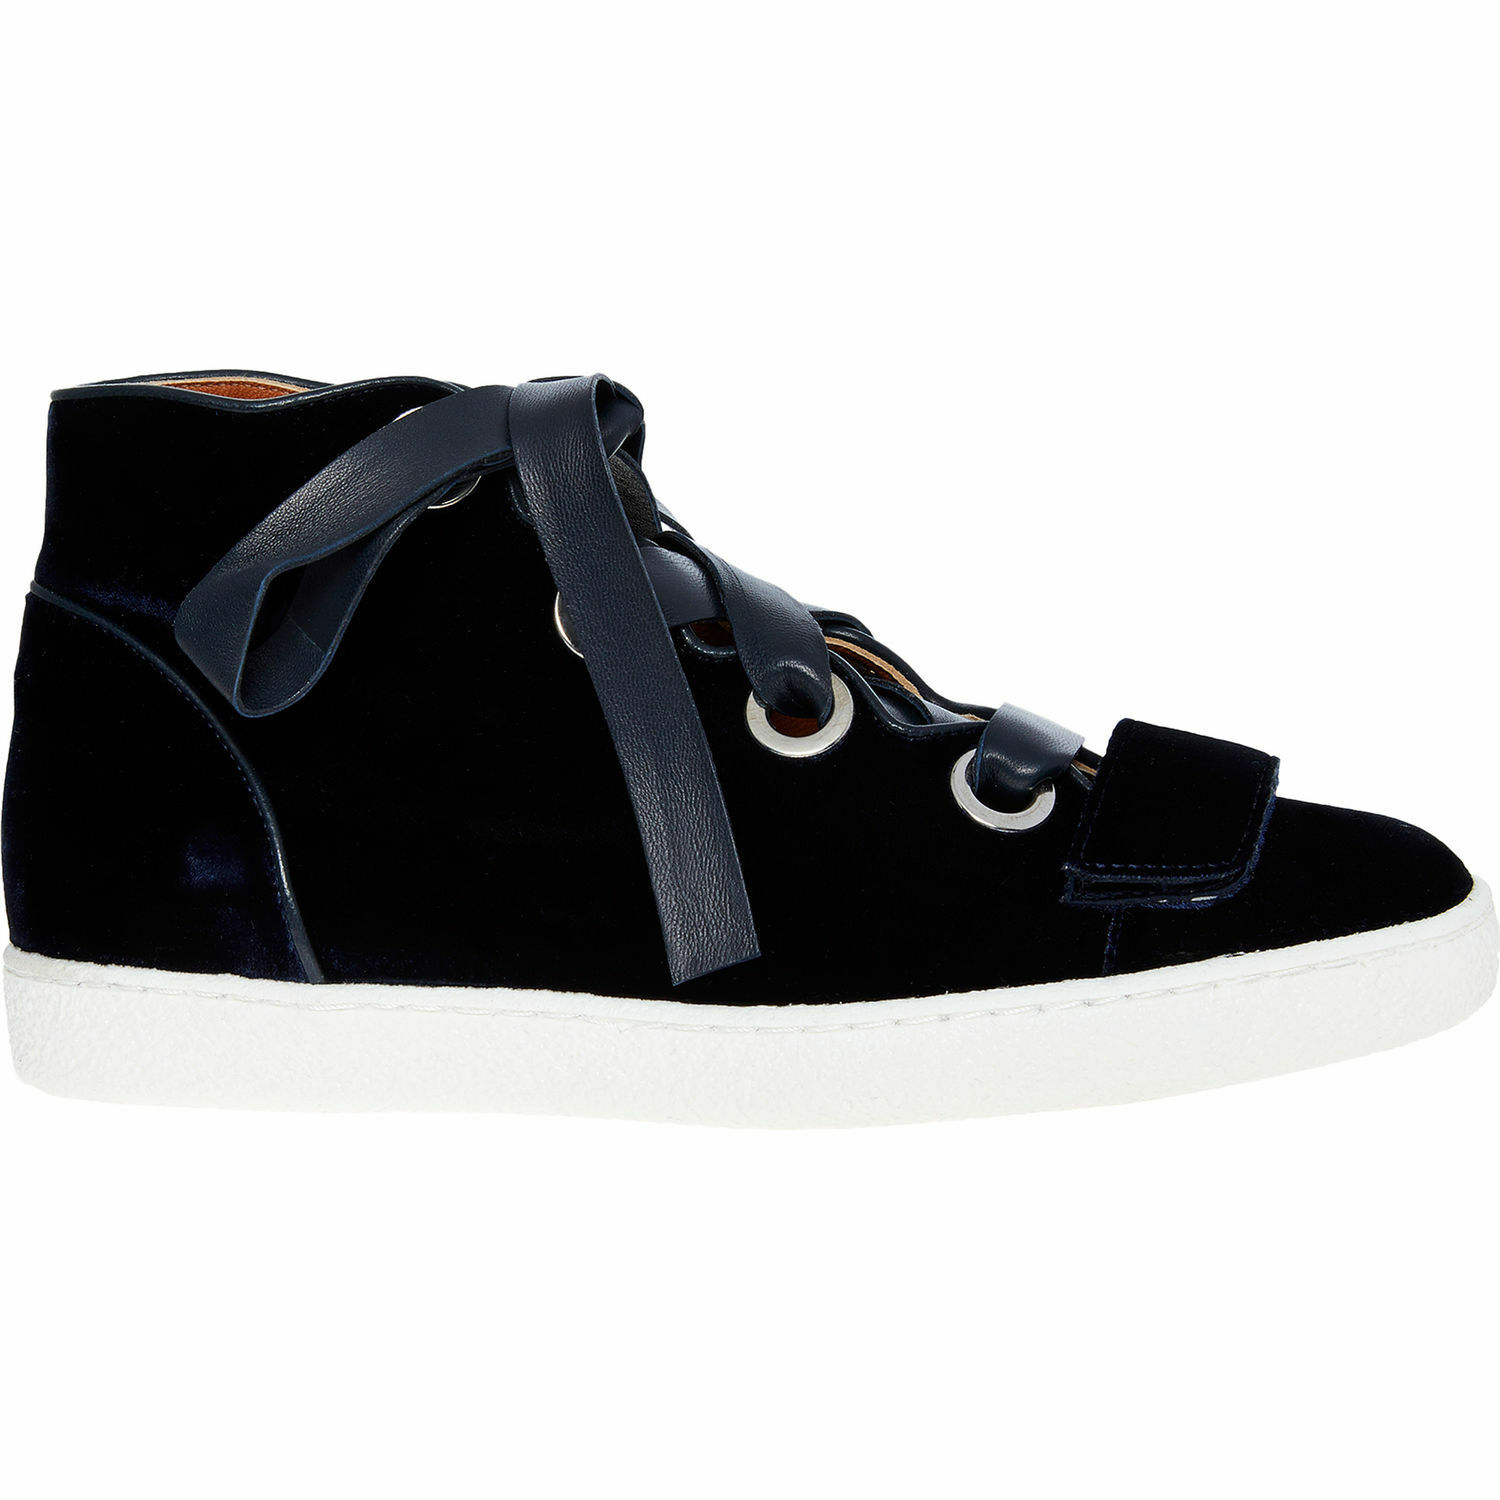 DEREK LAM Women's SERENA Navy Velvet High Top Sneakers, sizes UK 3 4